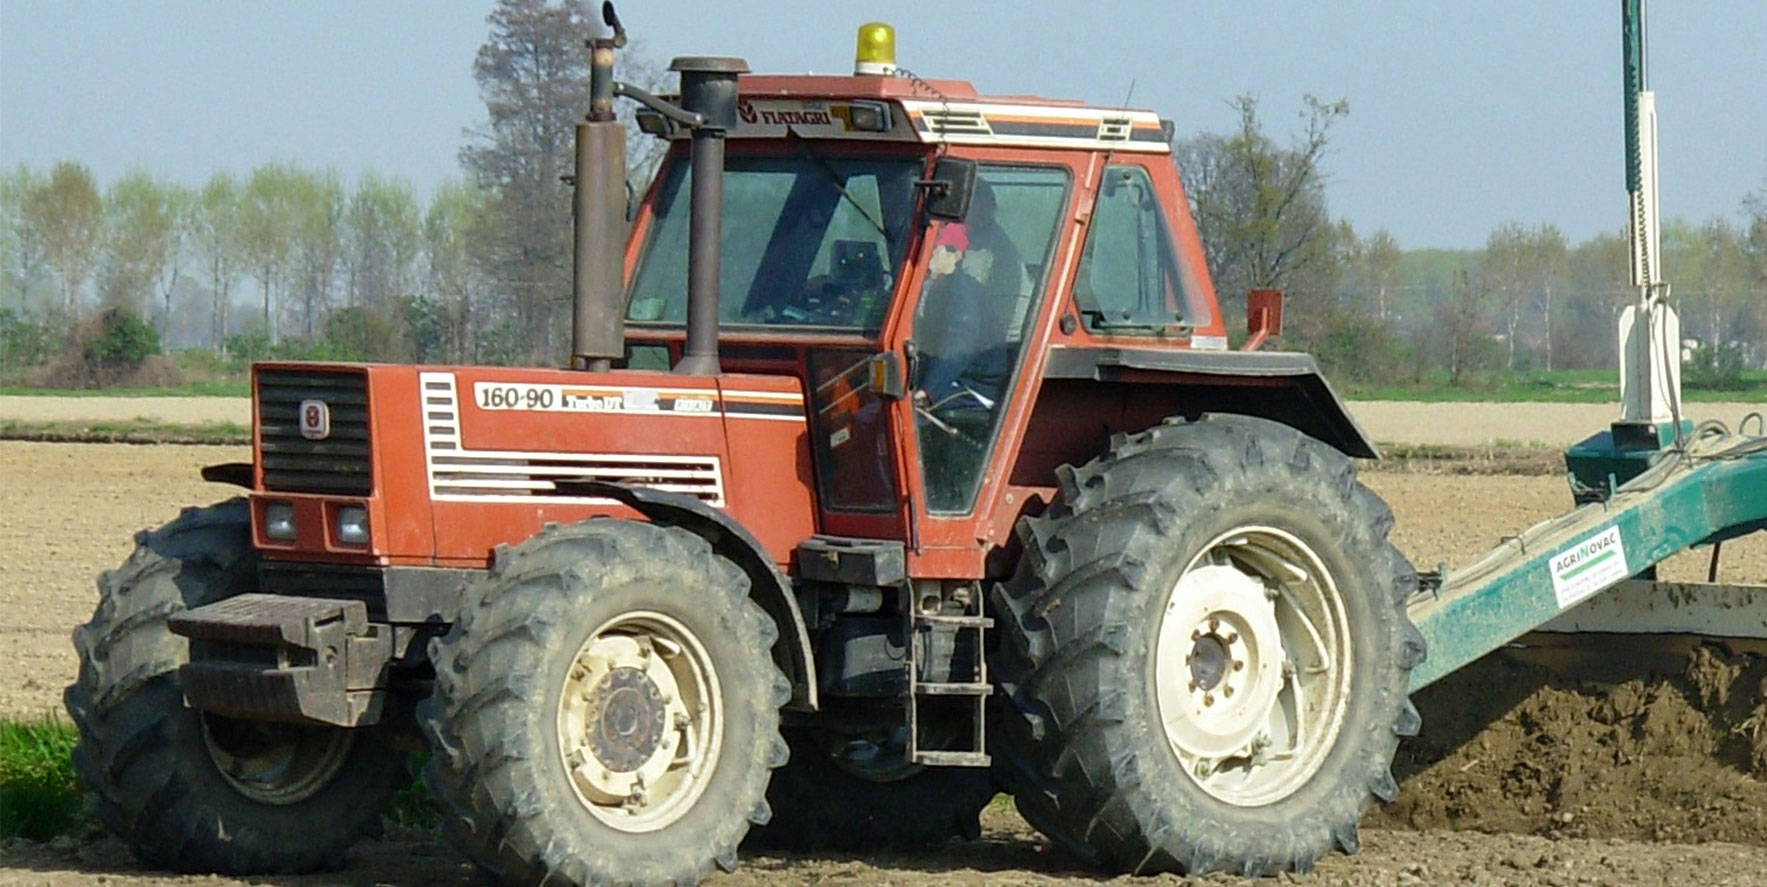 All Tractor Parts : Tractor parts australia all makes and models g w tractors